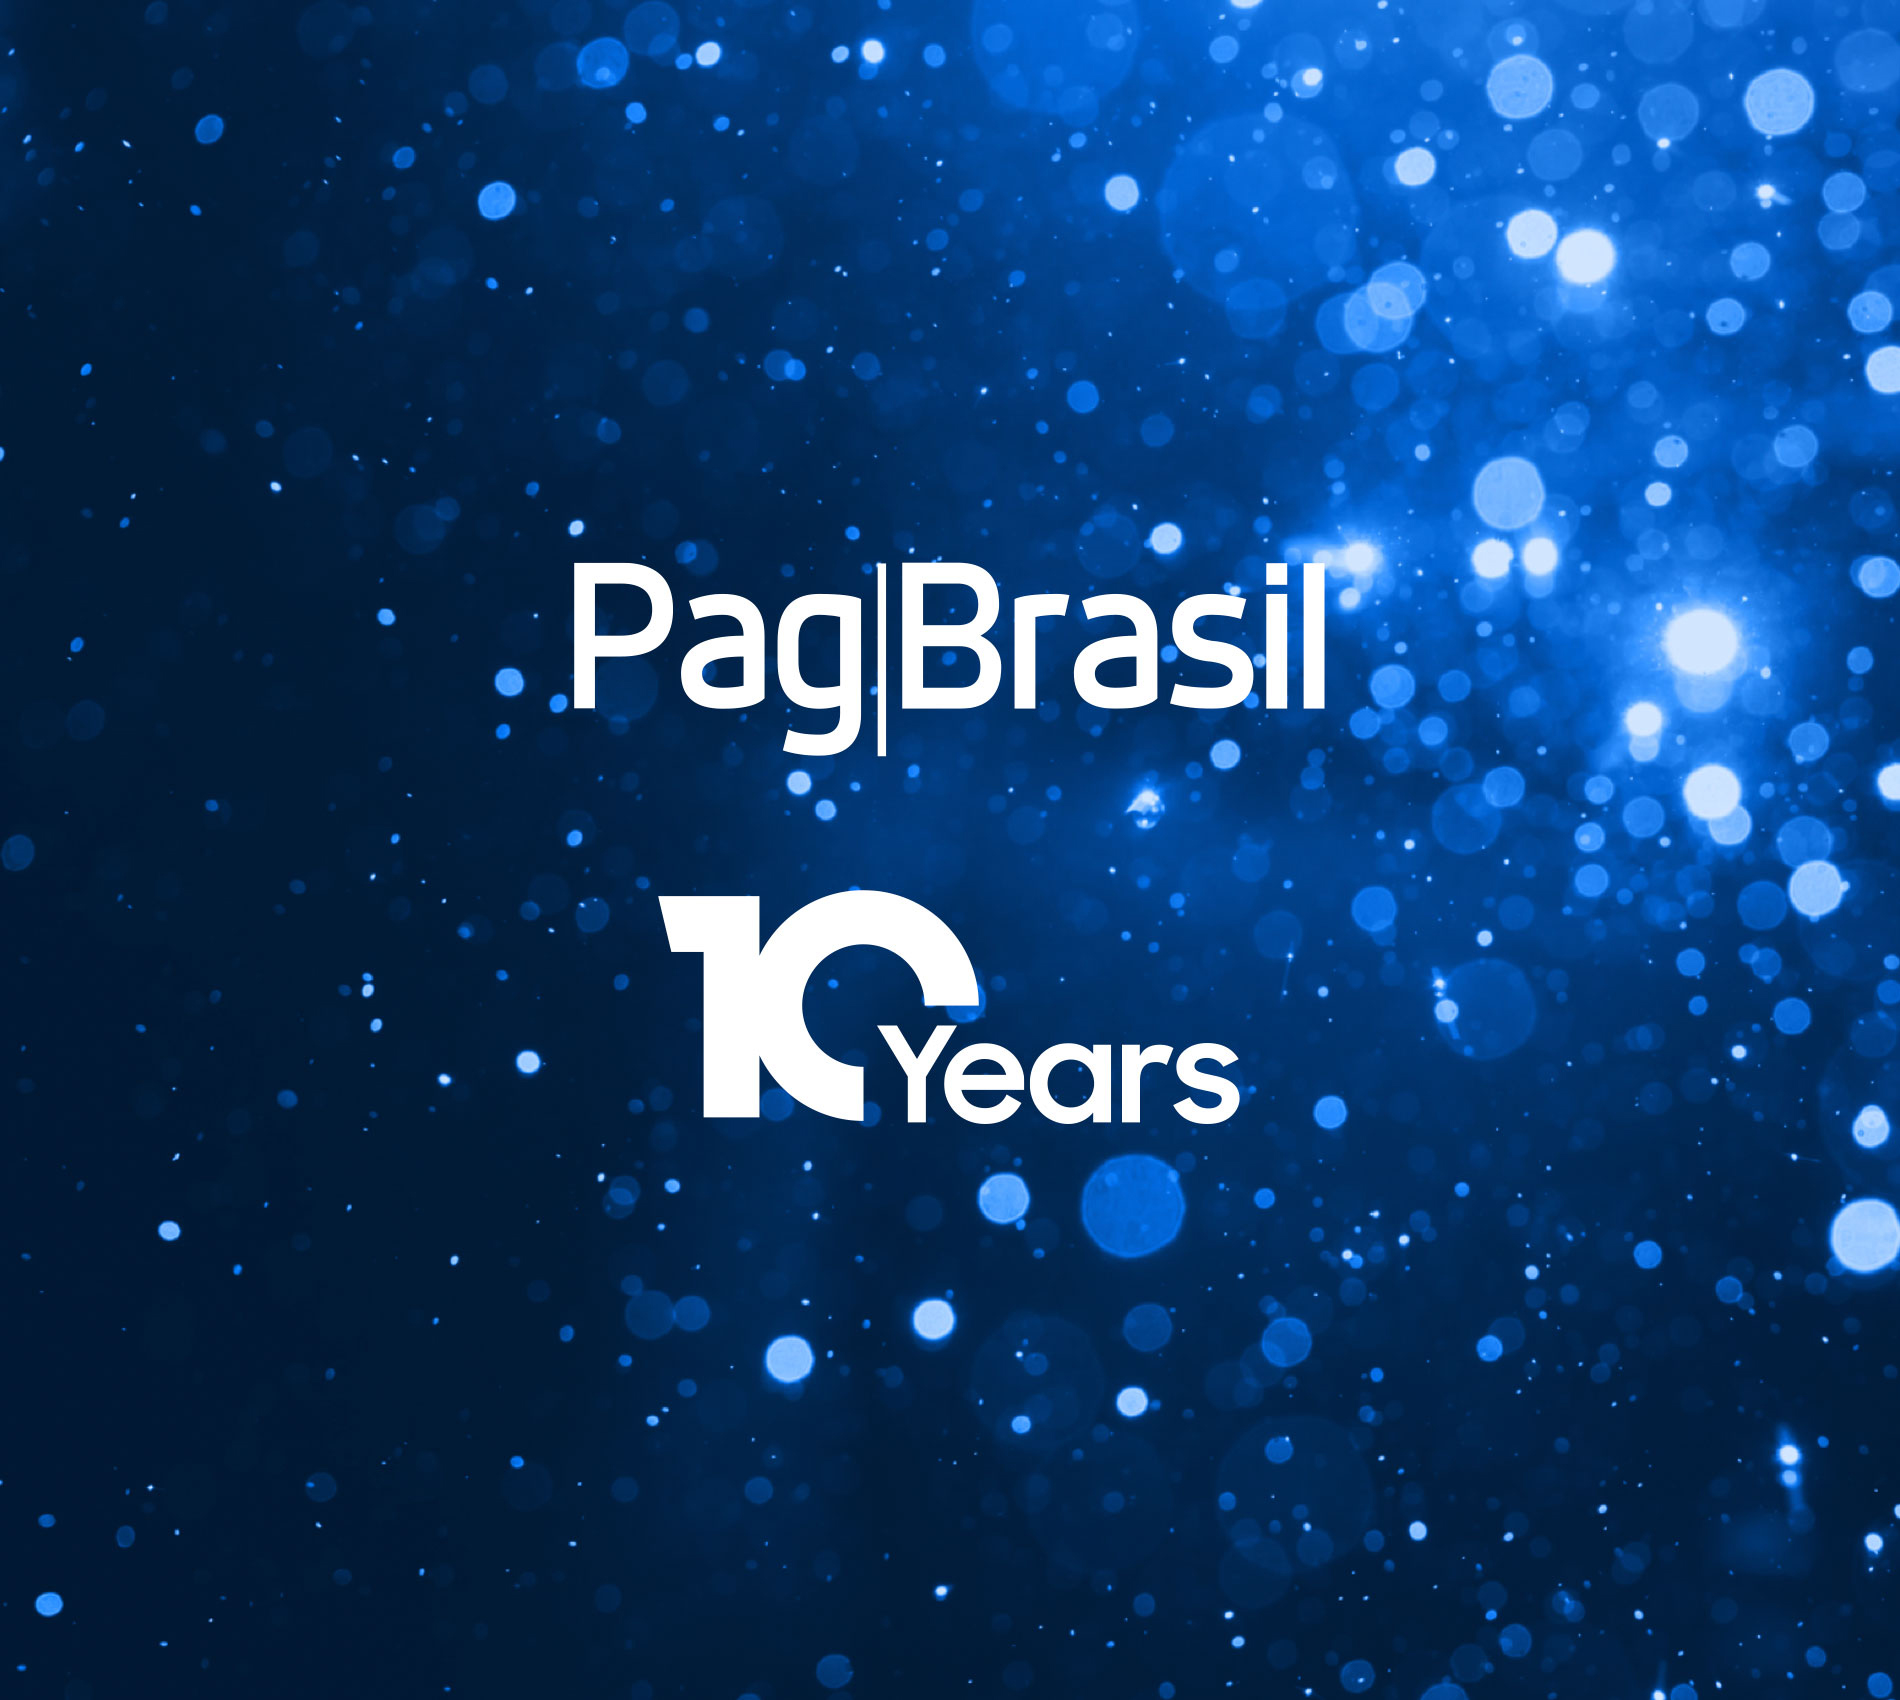 10 years of PagBrasil: integrating Brazil with the world